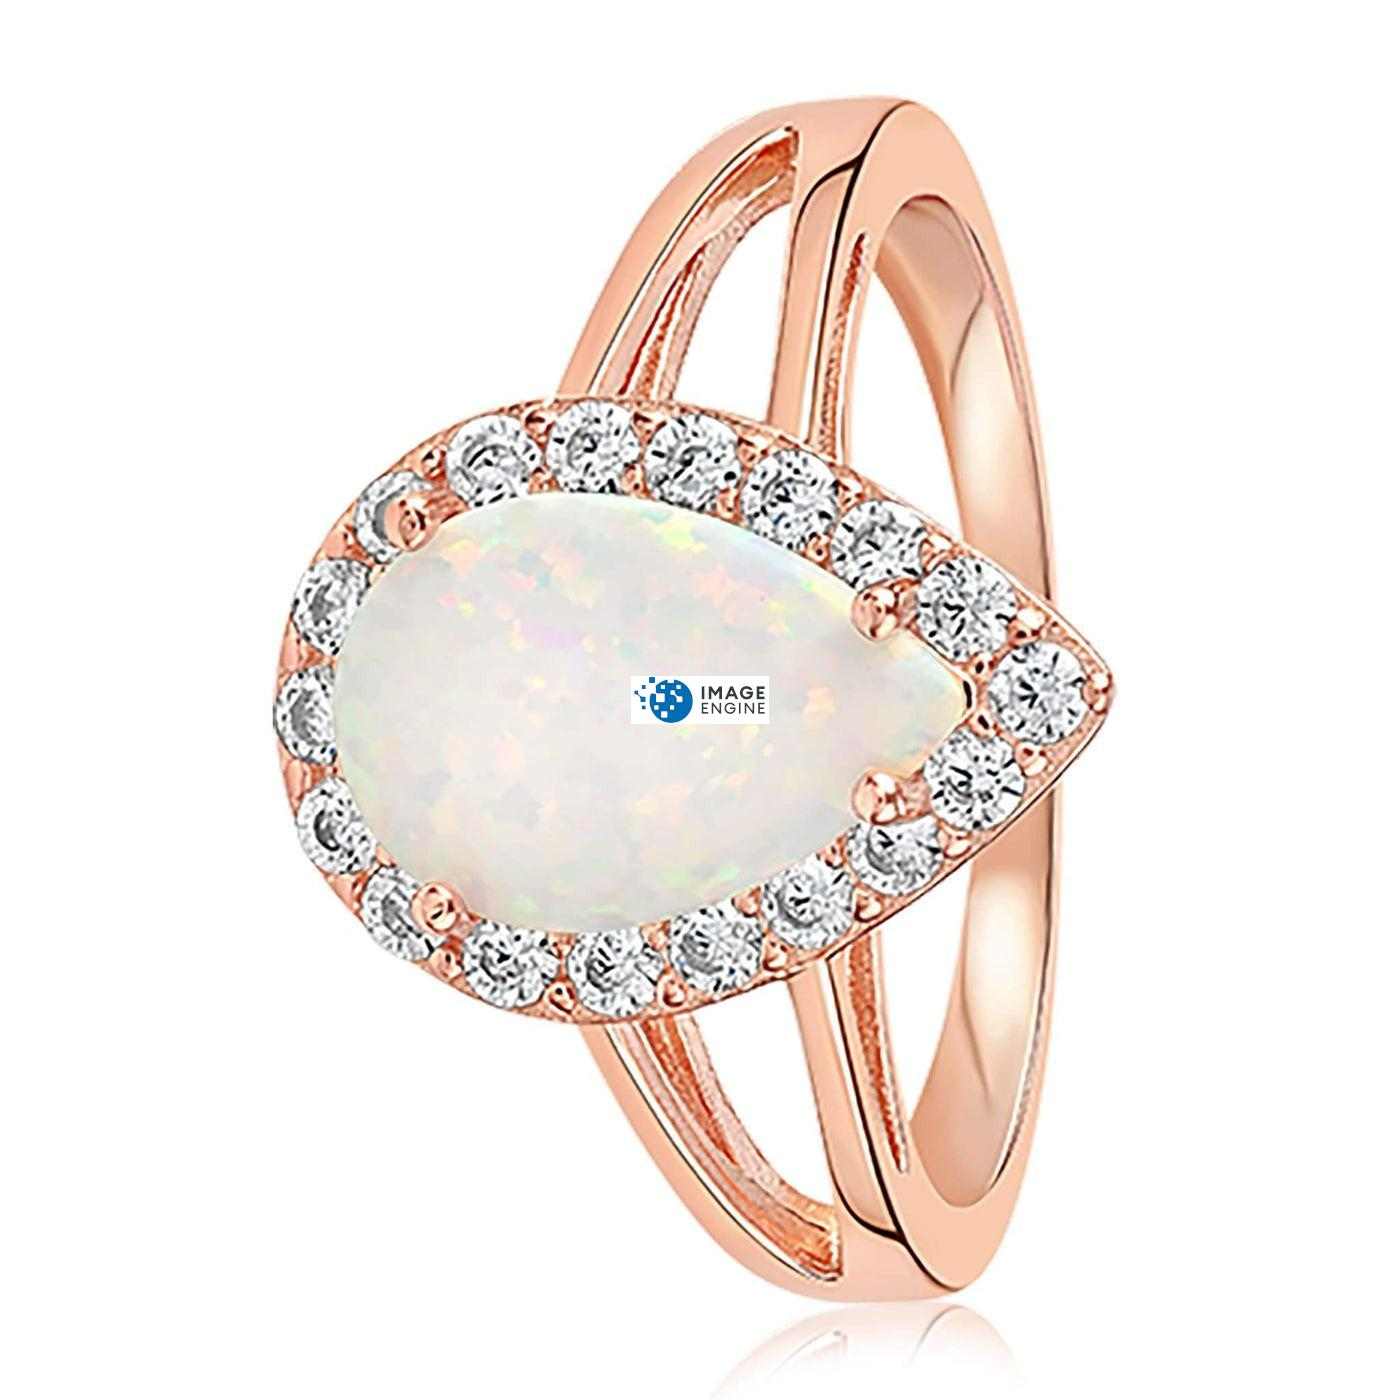 White Fire Champagne Opal Ring - Side View - 18K Rose Gold Vermeil